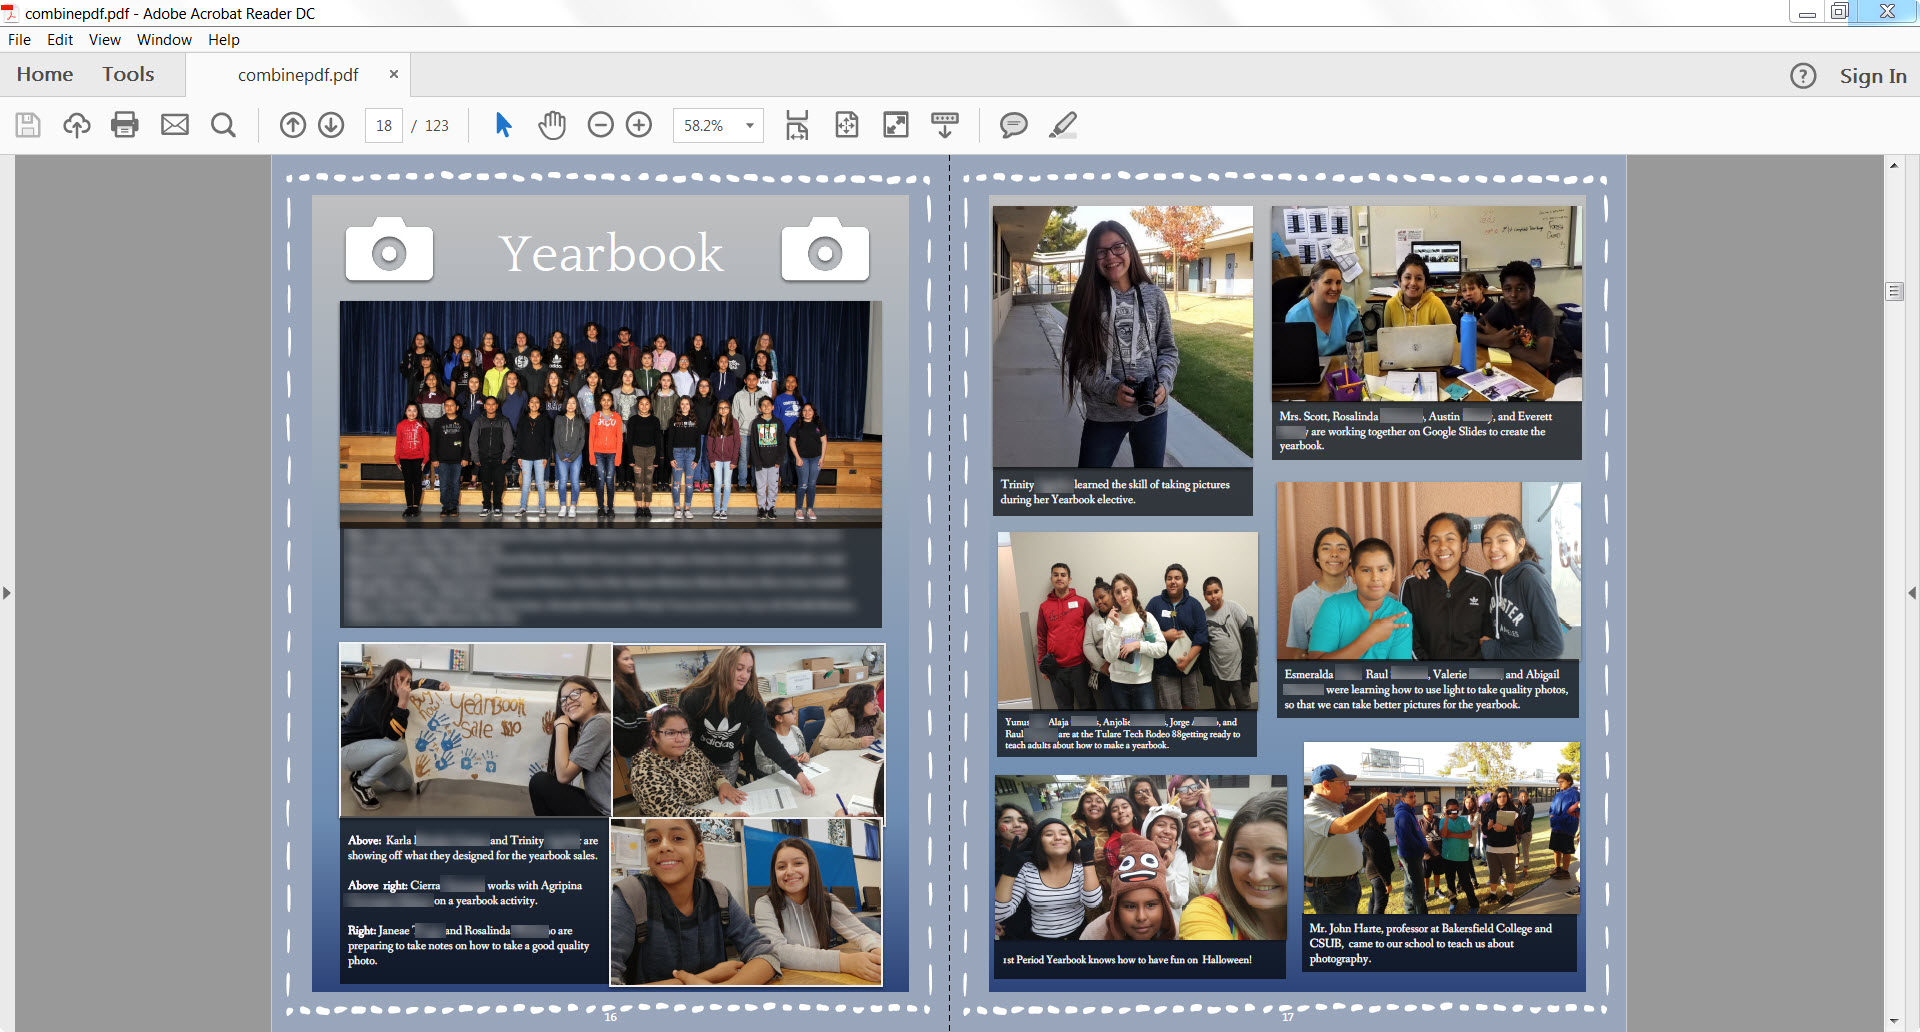 06 Proofread yearbook draft